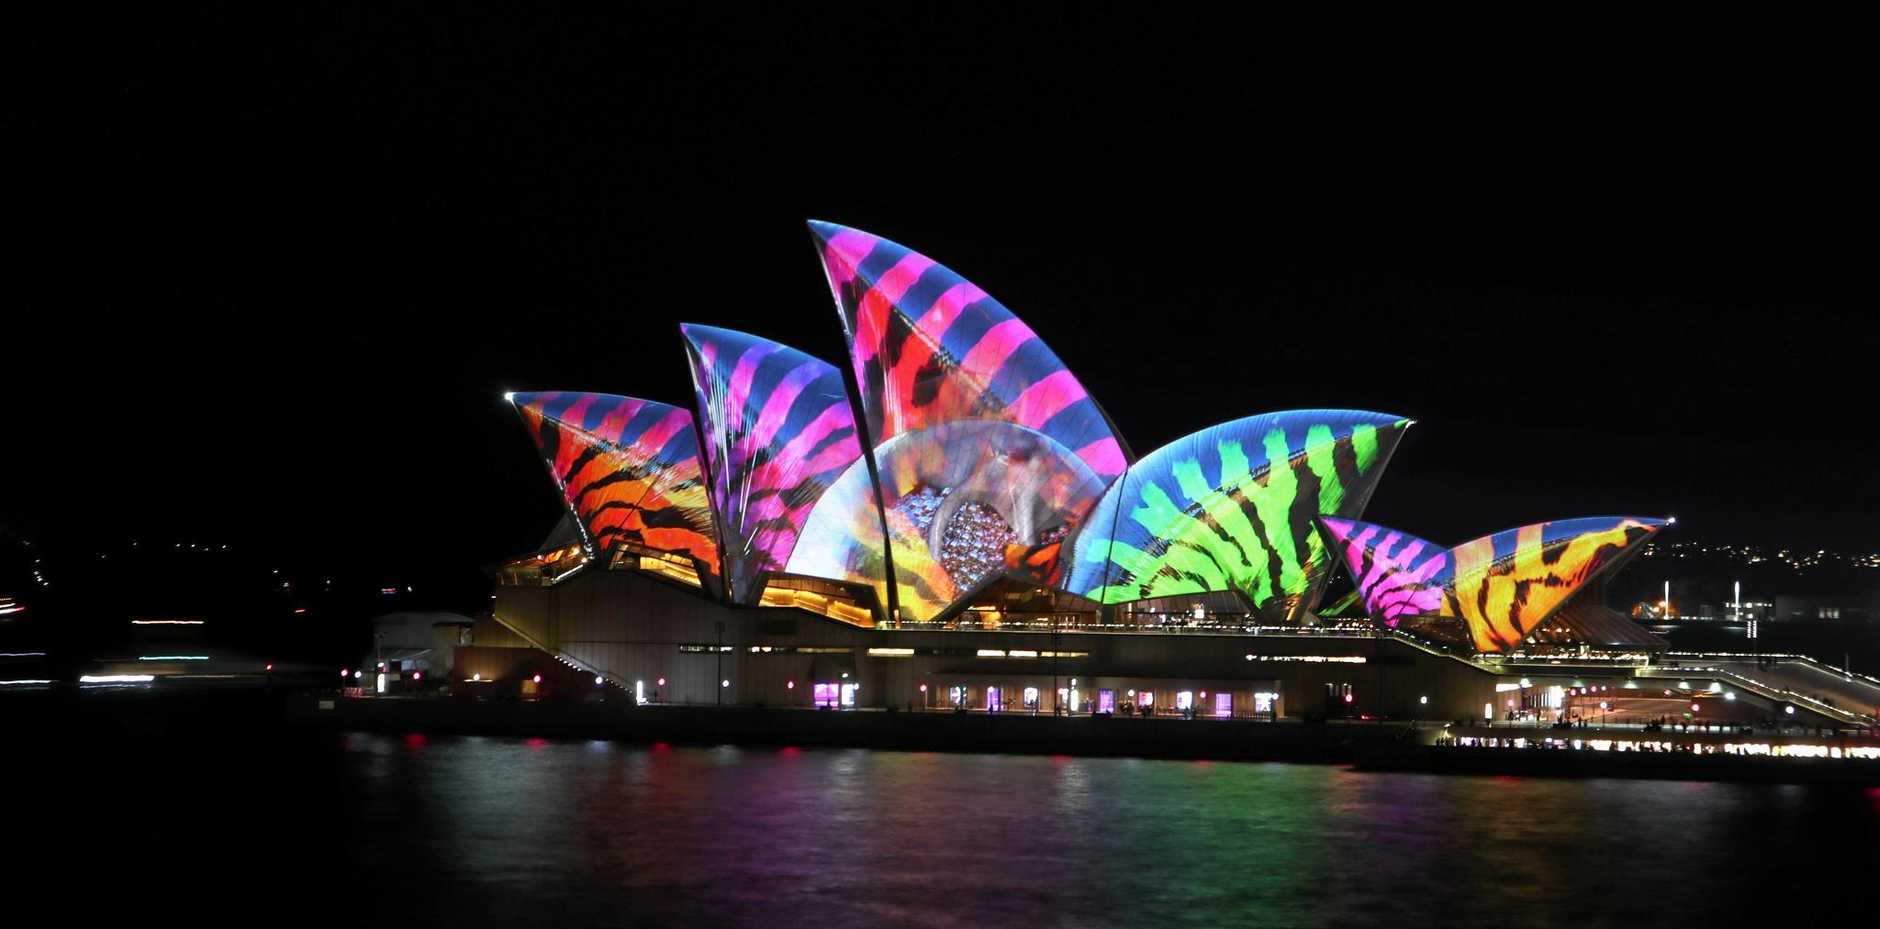 VERY HAPPY SNAPS: Capturing the lights of Vivid Sydney on a Canon Collective photography tour with Jenn Cooper.